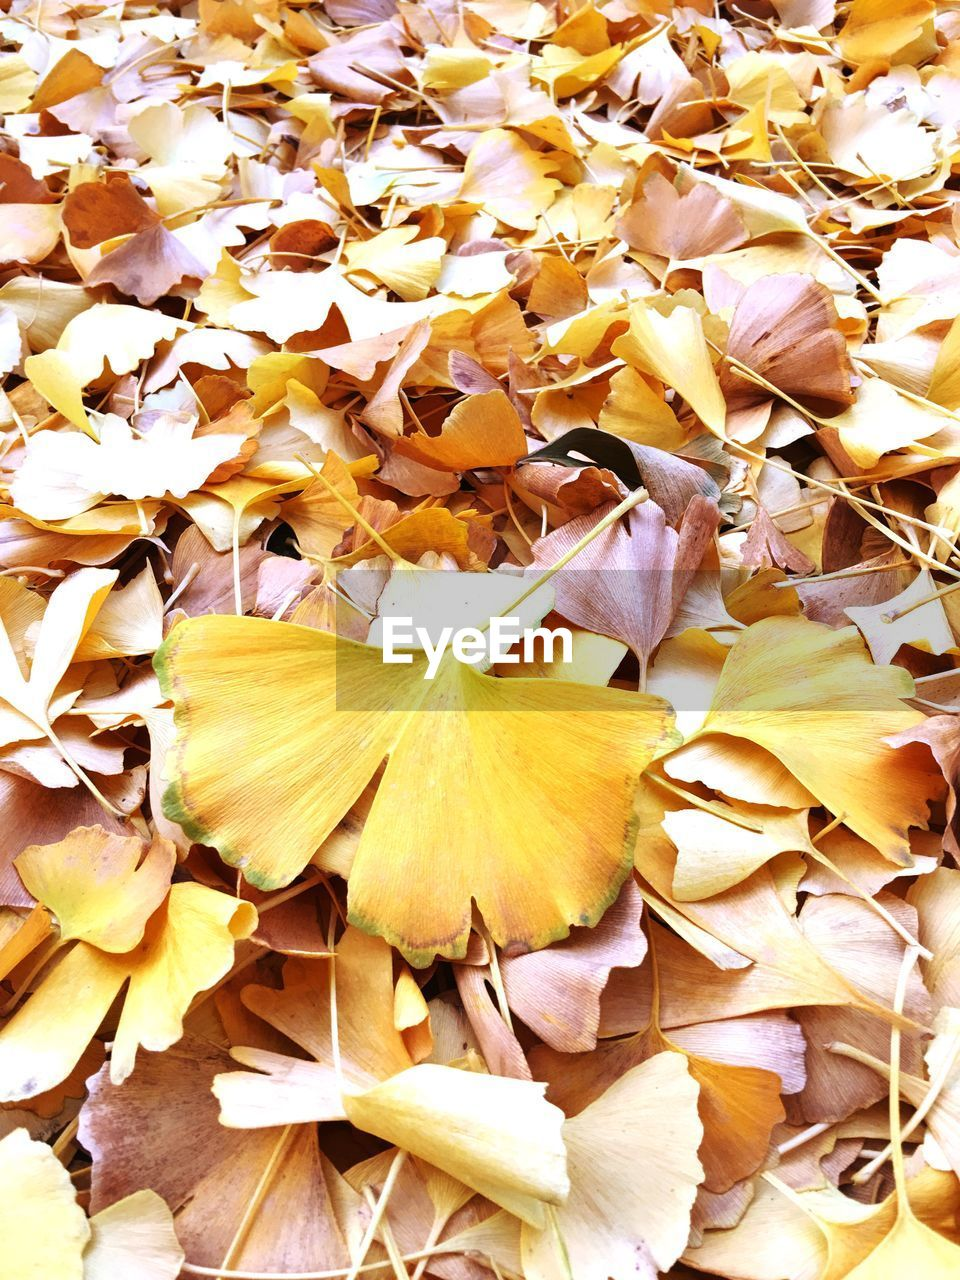 fragility, nature, petal, flower, beauty in nature, autumn, leaf, no people, close-up, backgrounds, outdoors, day, flower head, freshness